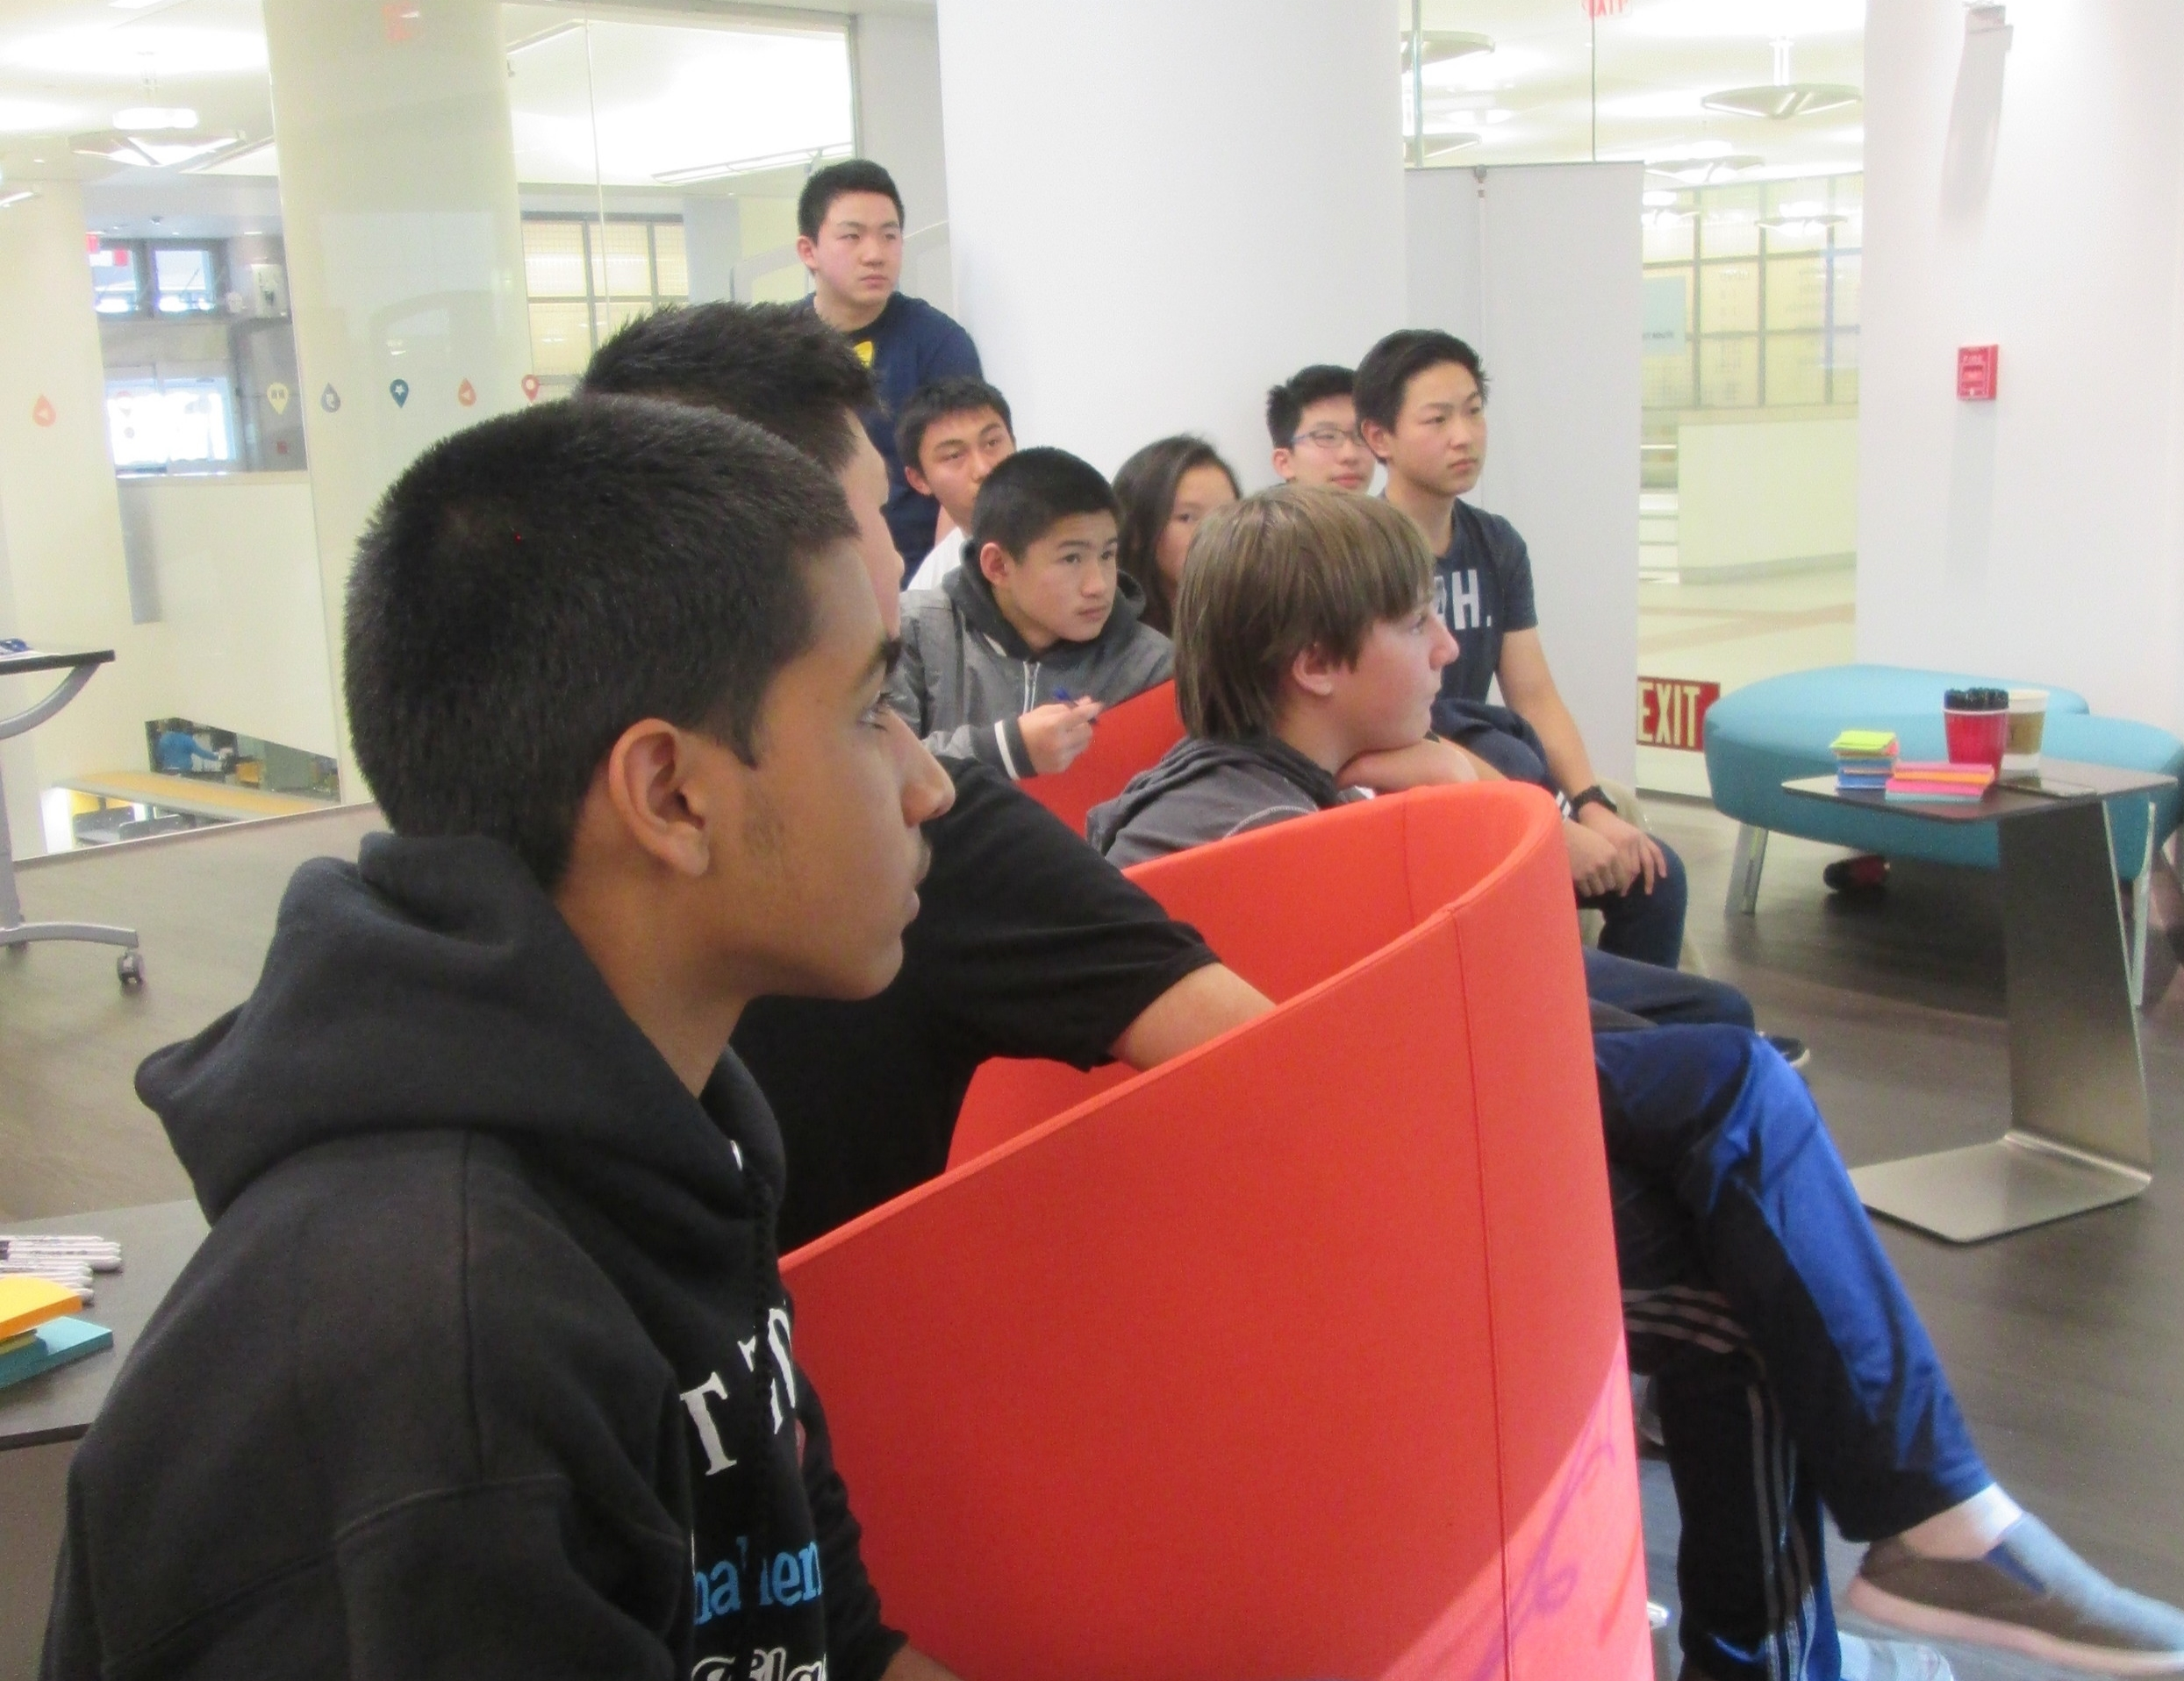 Student hackers attend IDEO workshop at the TeenTechSF Civic Hackathon